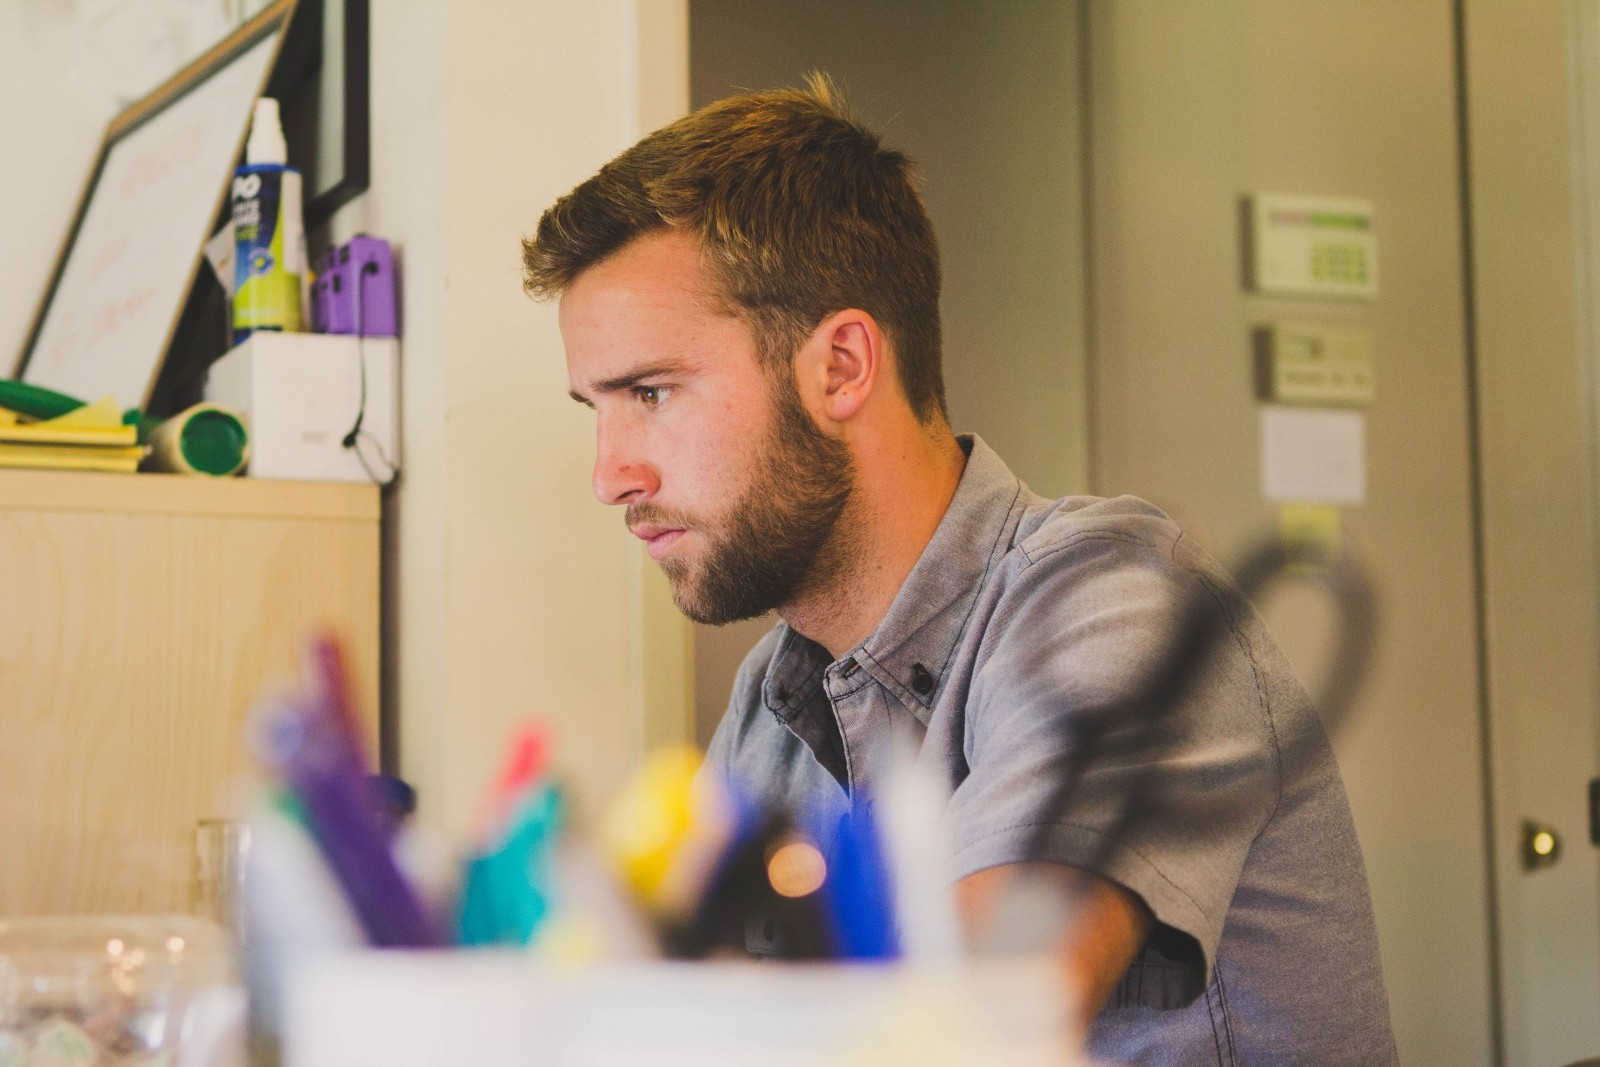 young-man-sitting-and-working-at-desk